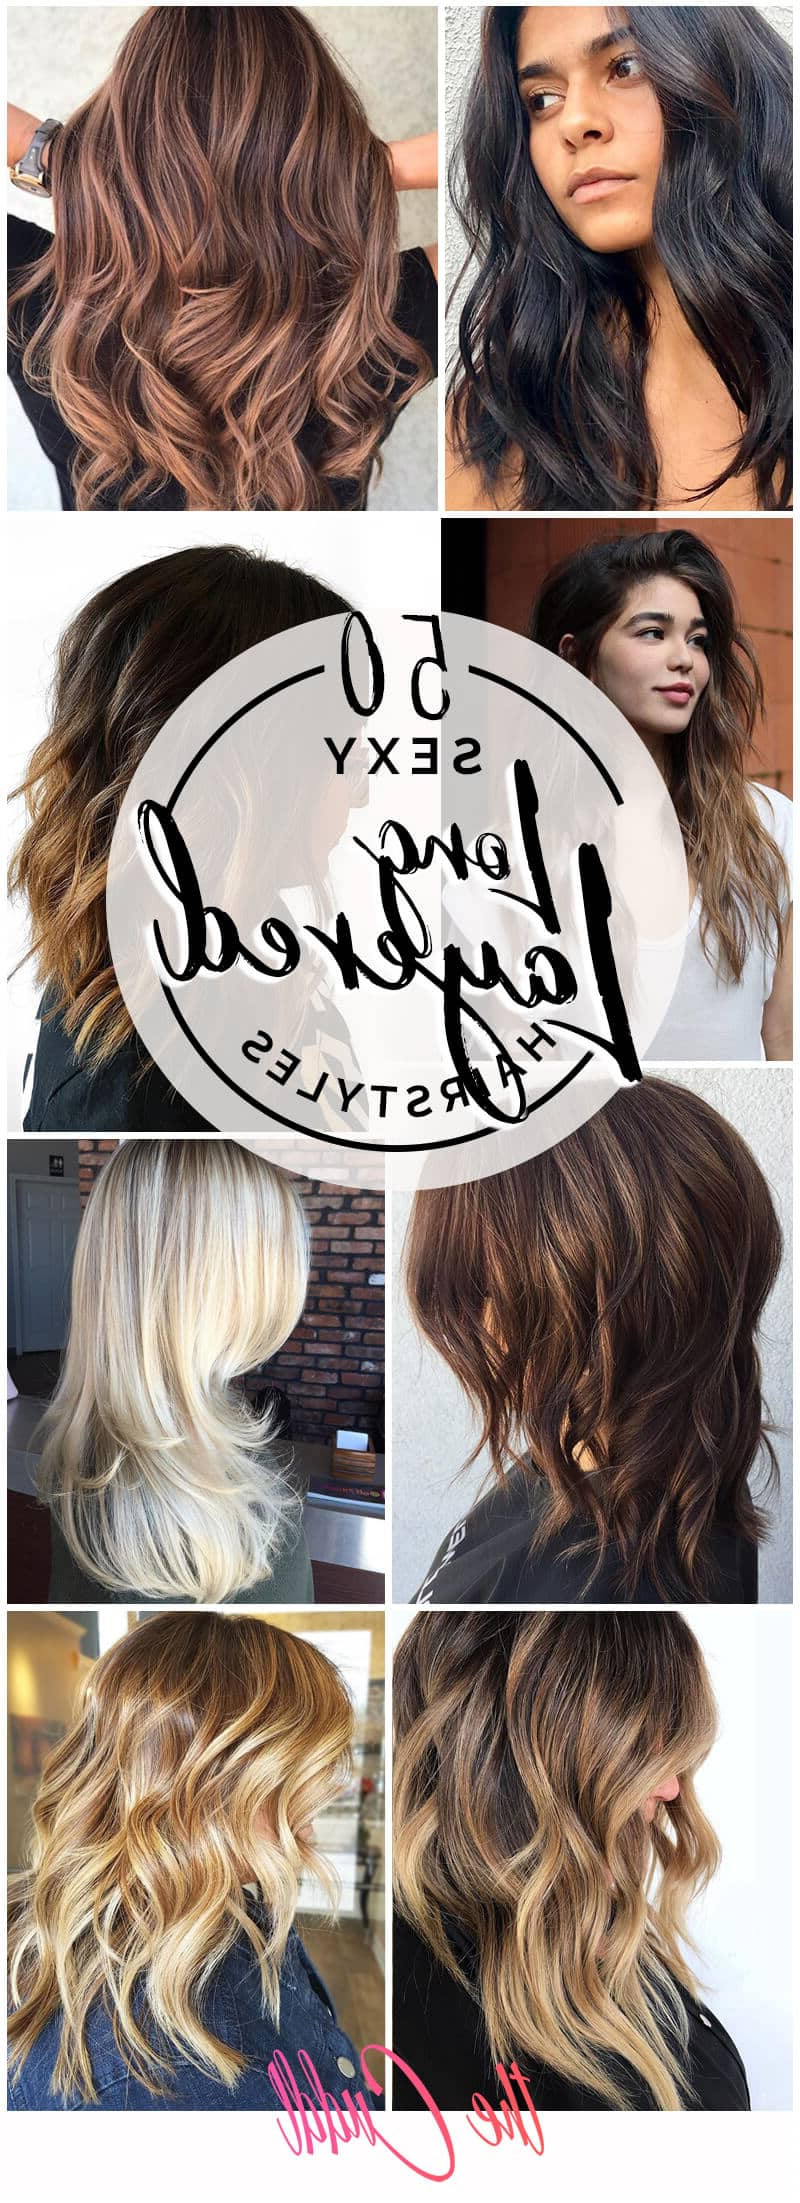 50 Sexy Long Layered Hair Ideas To Create Effortless Style In 2018 Inside Silver Balayage Bob Haircuts With Swoopy Layers (View 17 of 20)